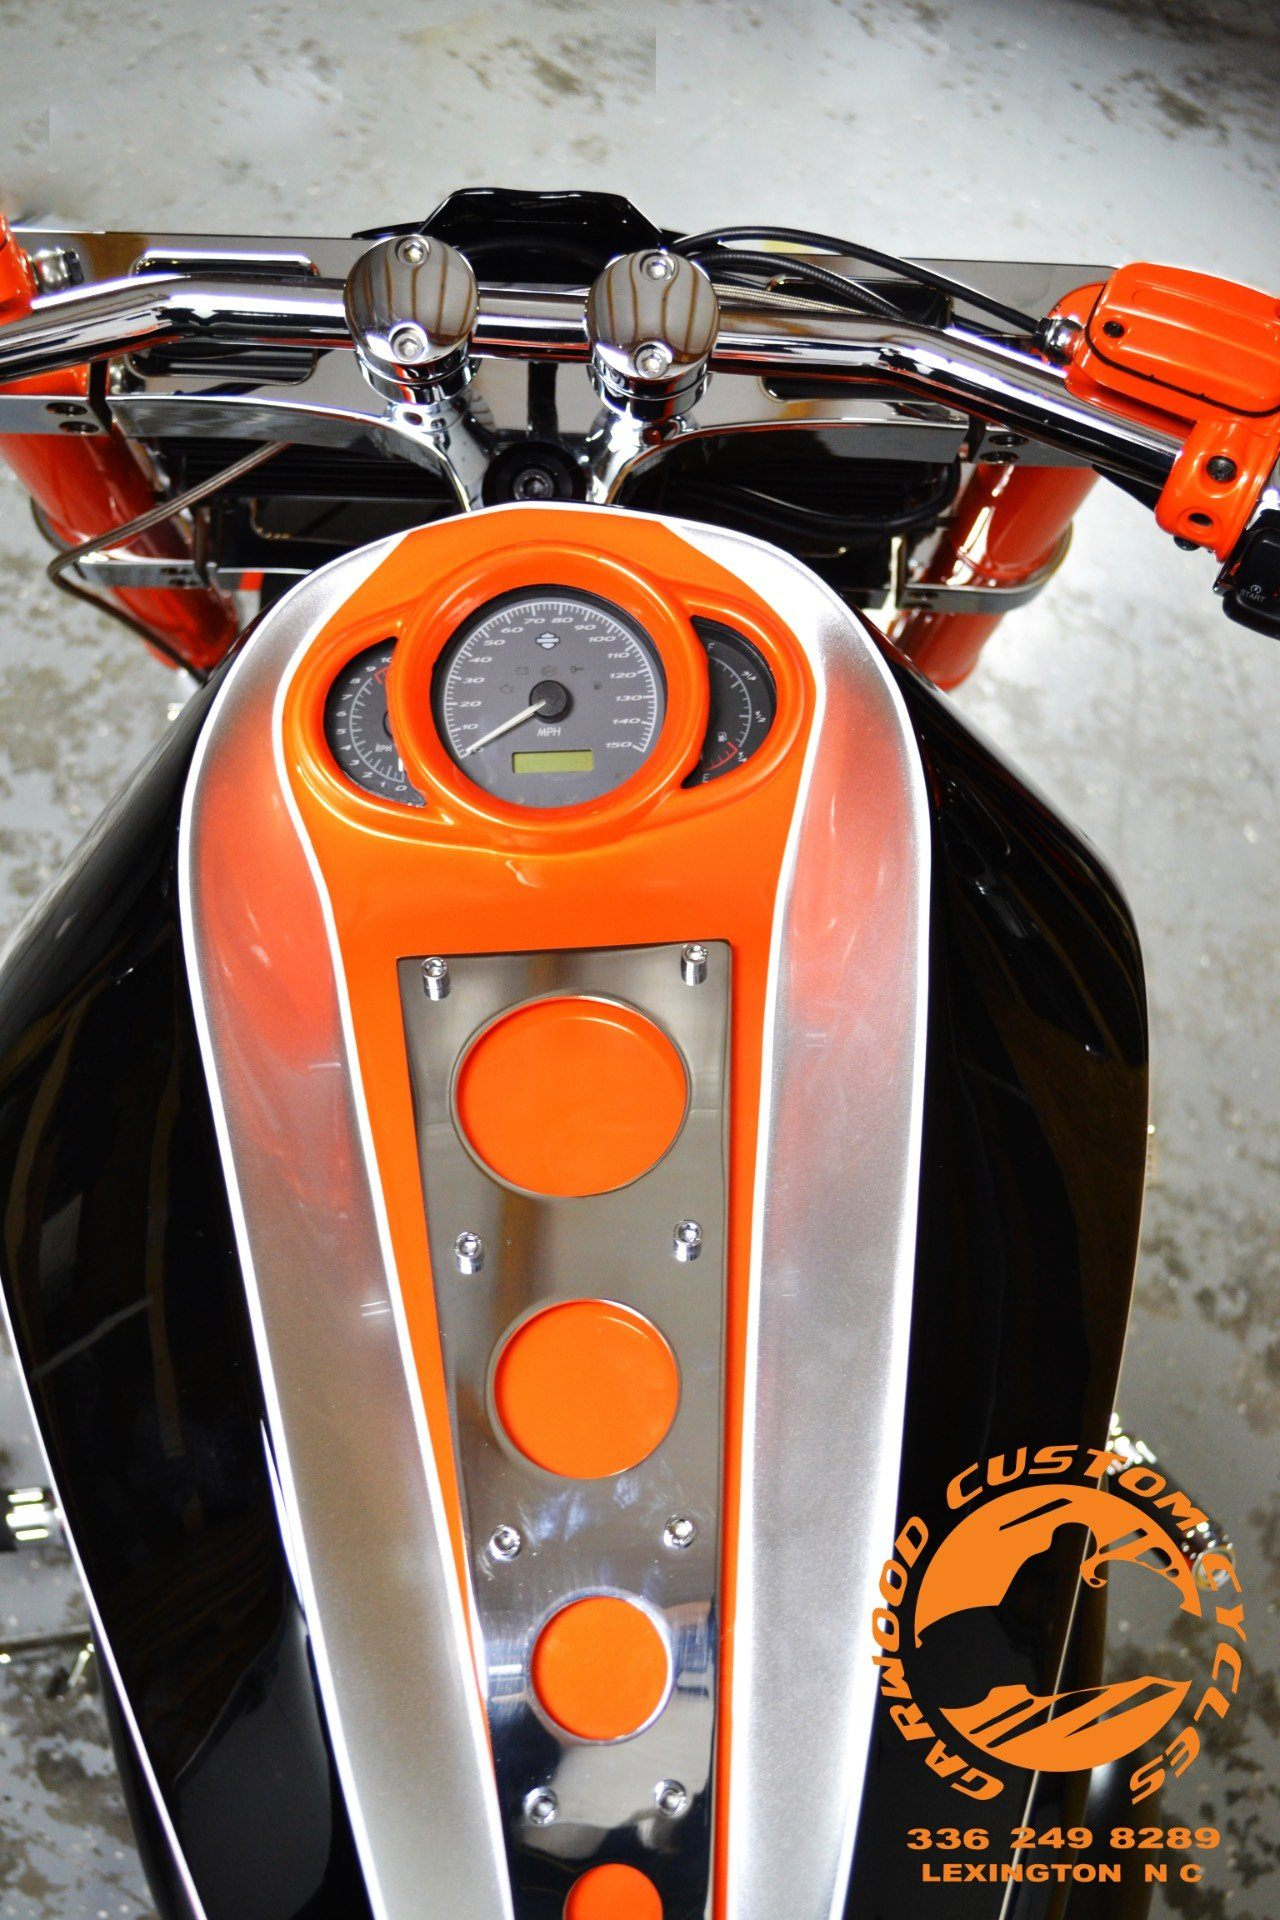 2012 Harley Davidson V-ROD in Lexington, North Carolina - Photo 5